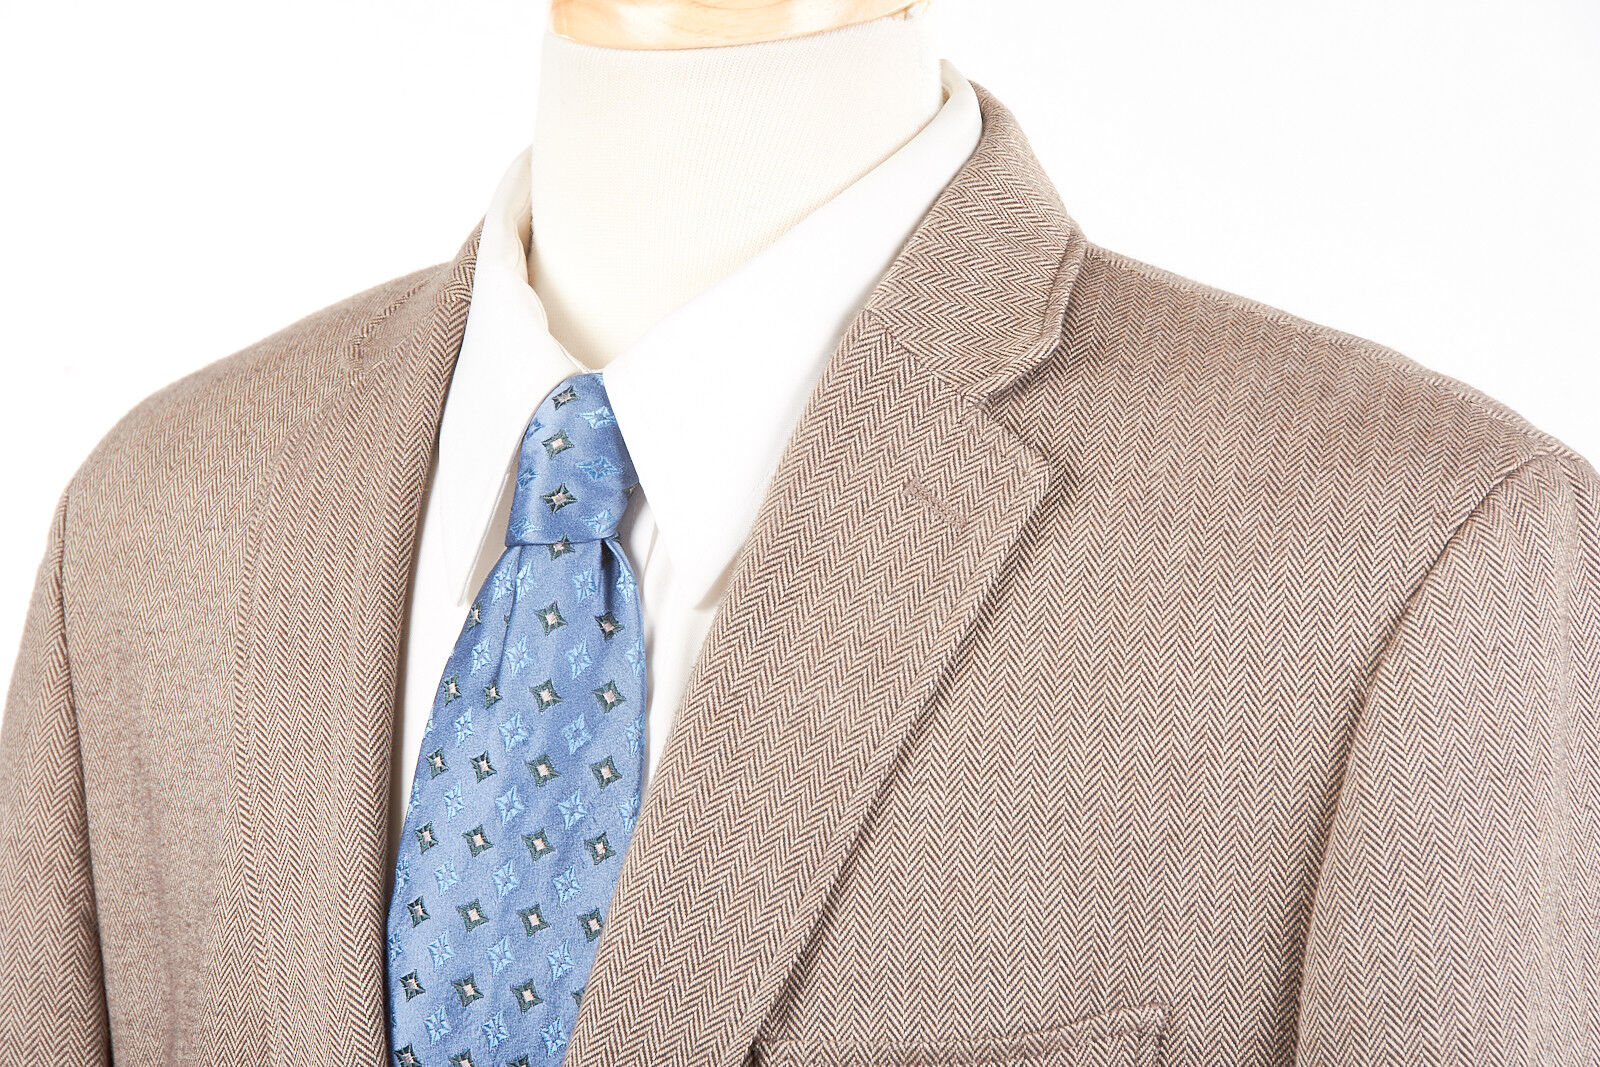 Herren BANANA REPUBLIC Sport Coat 42 S in Taupe Braun Herringbone Brushed Cotton